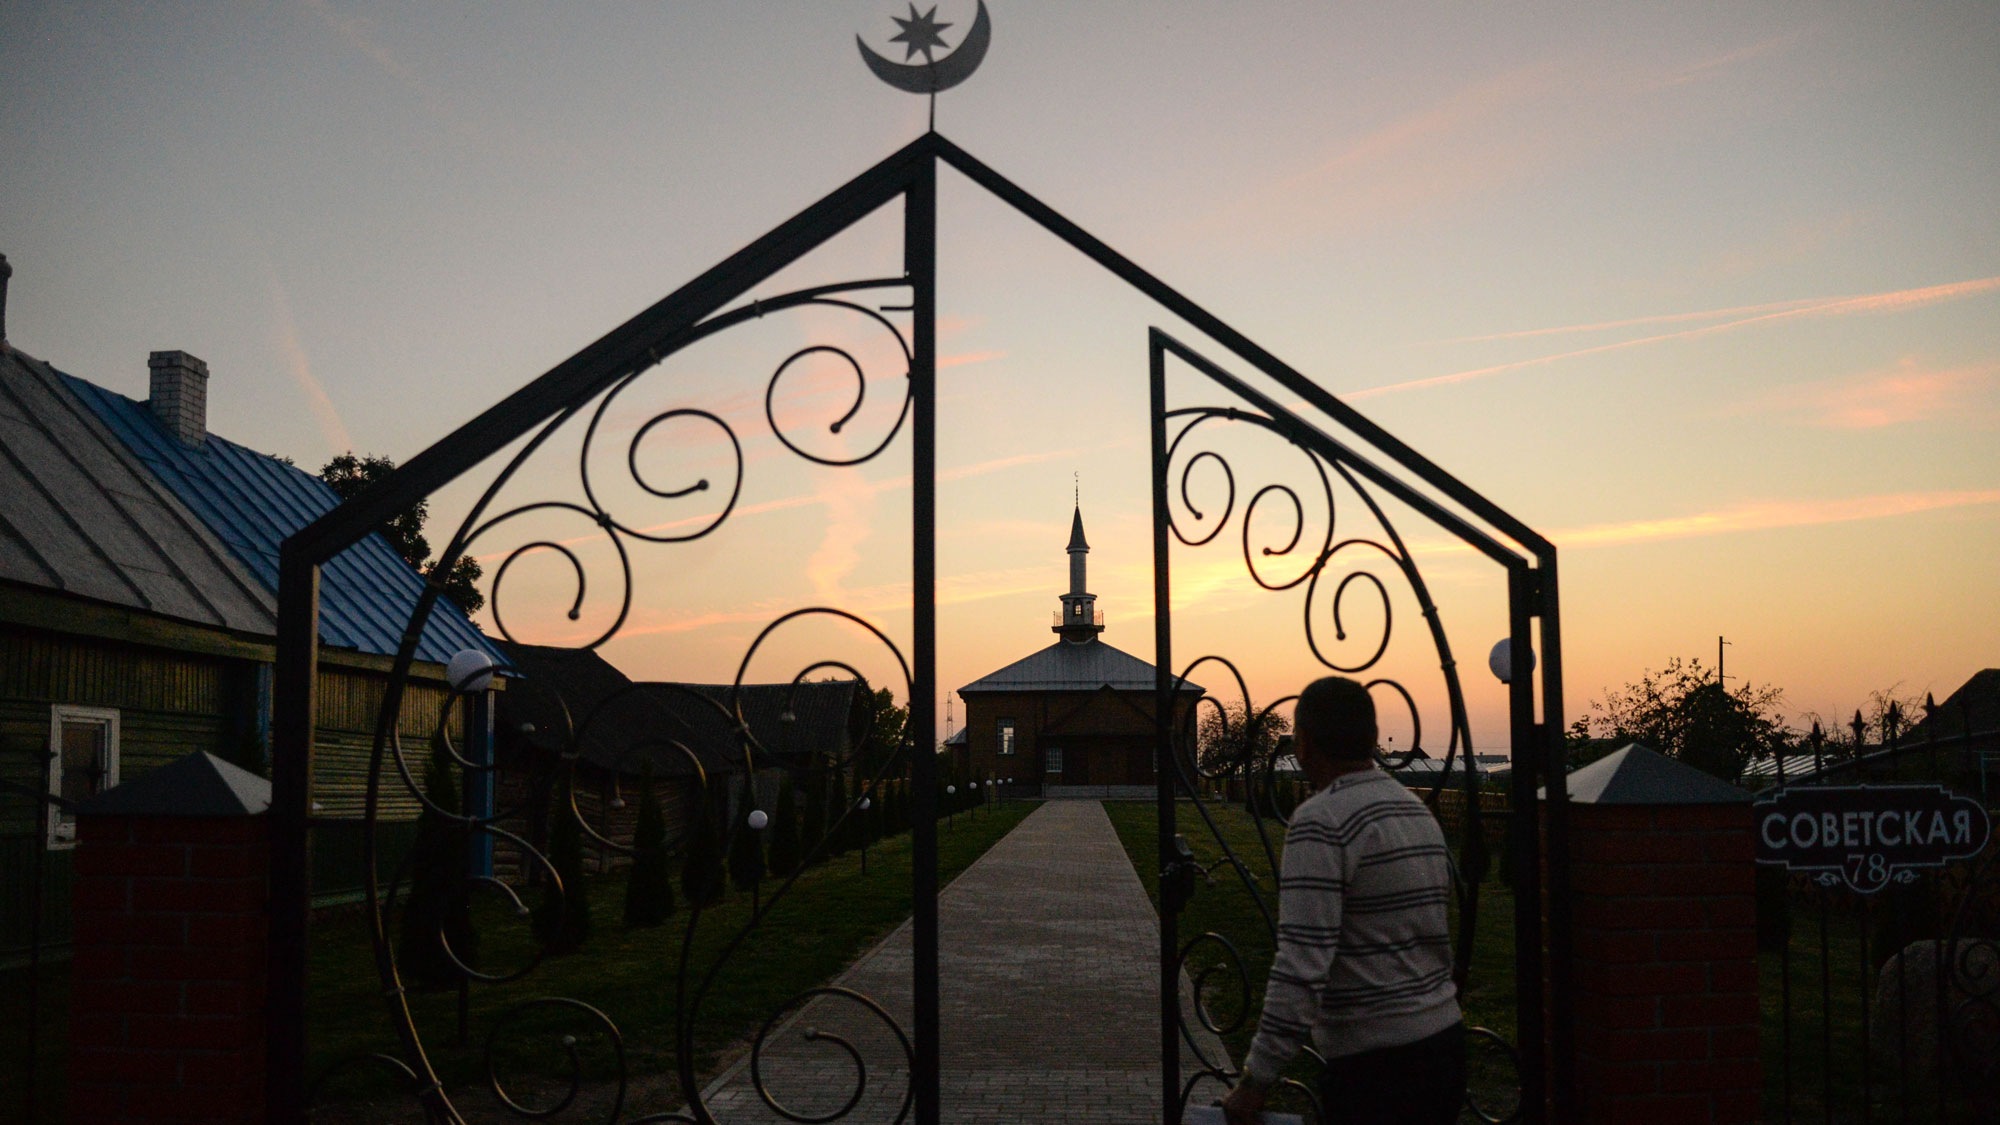 A sunset with the silhouette of a mosque and man approaching